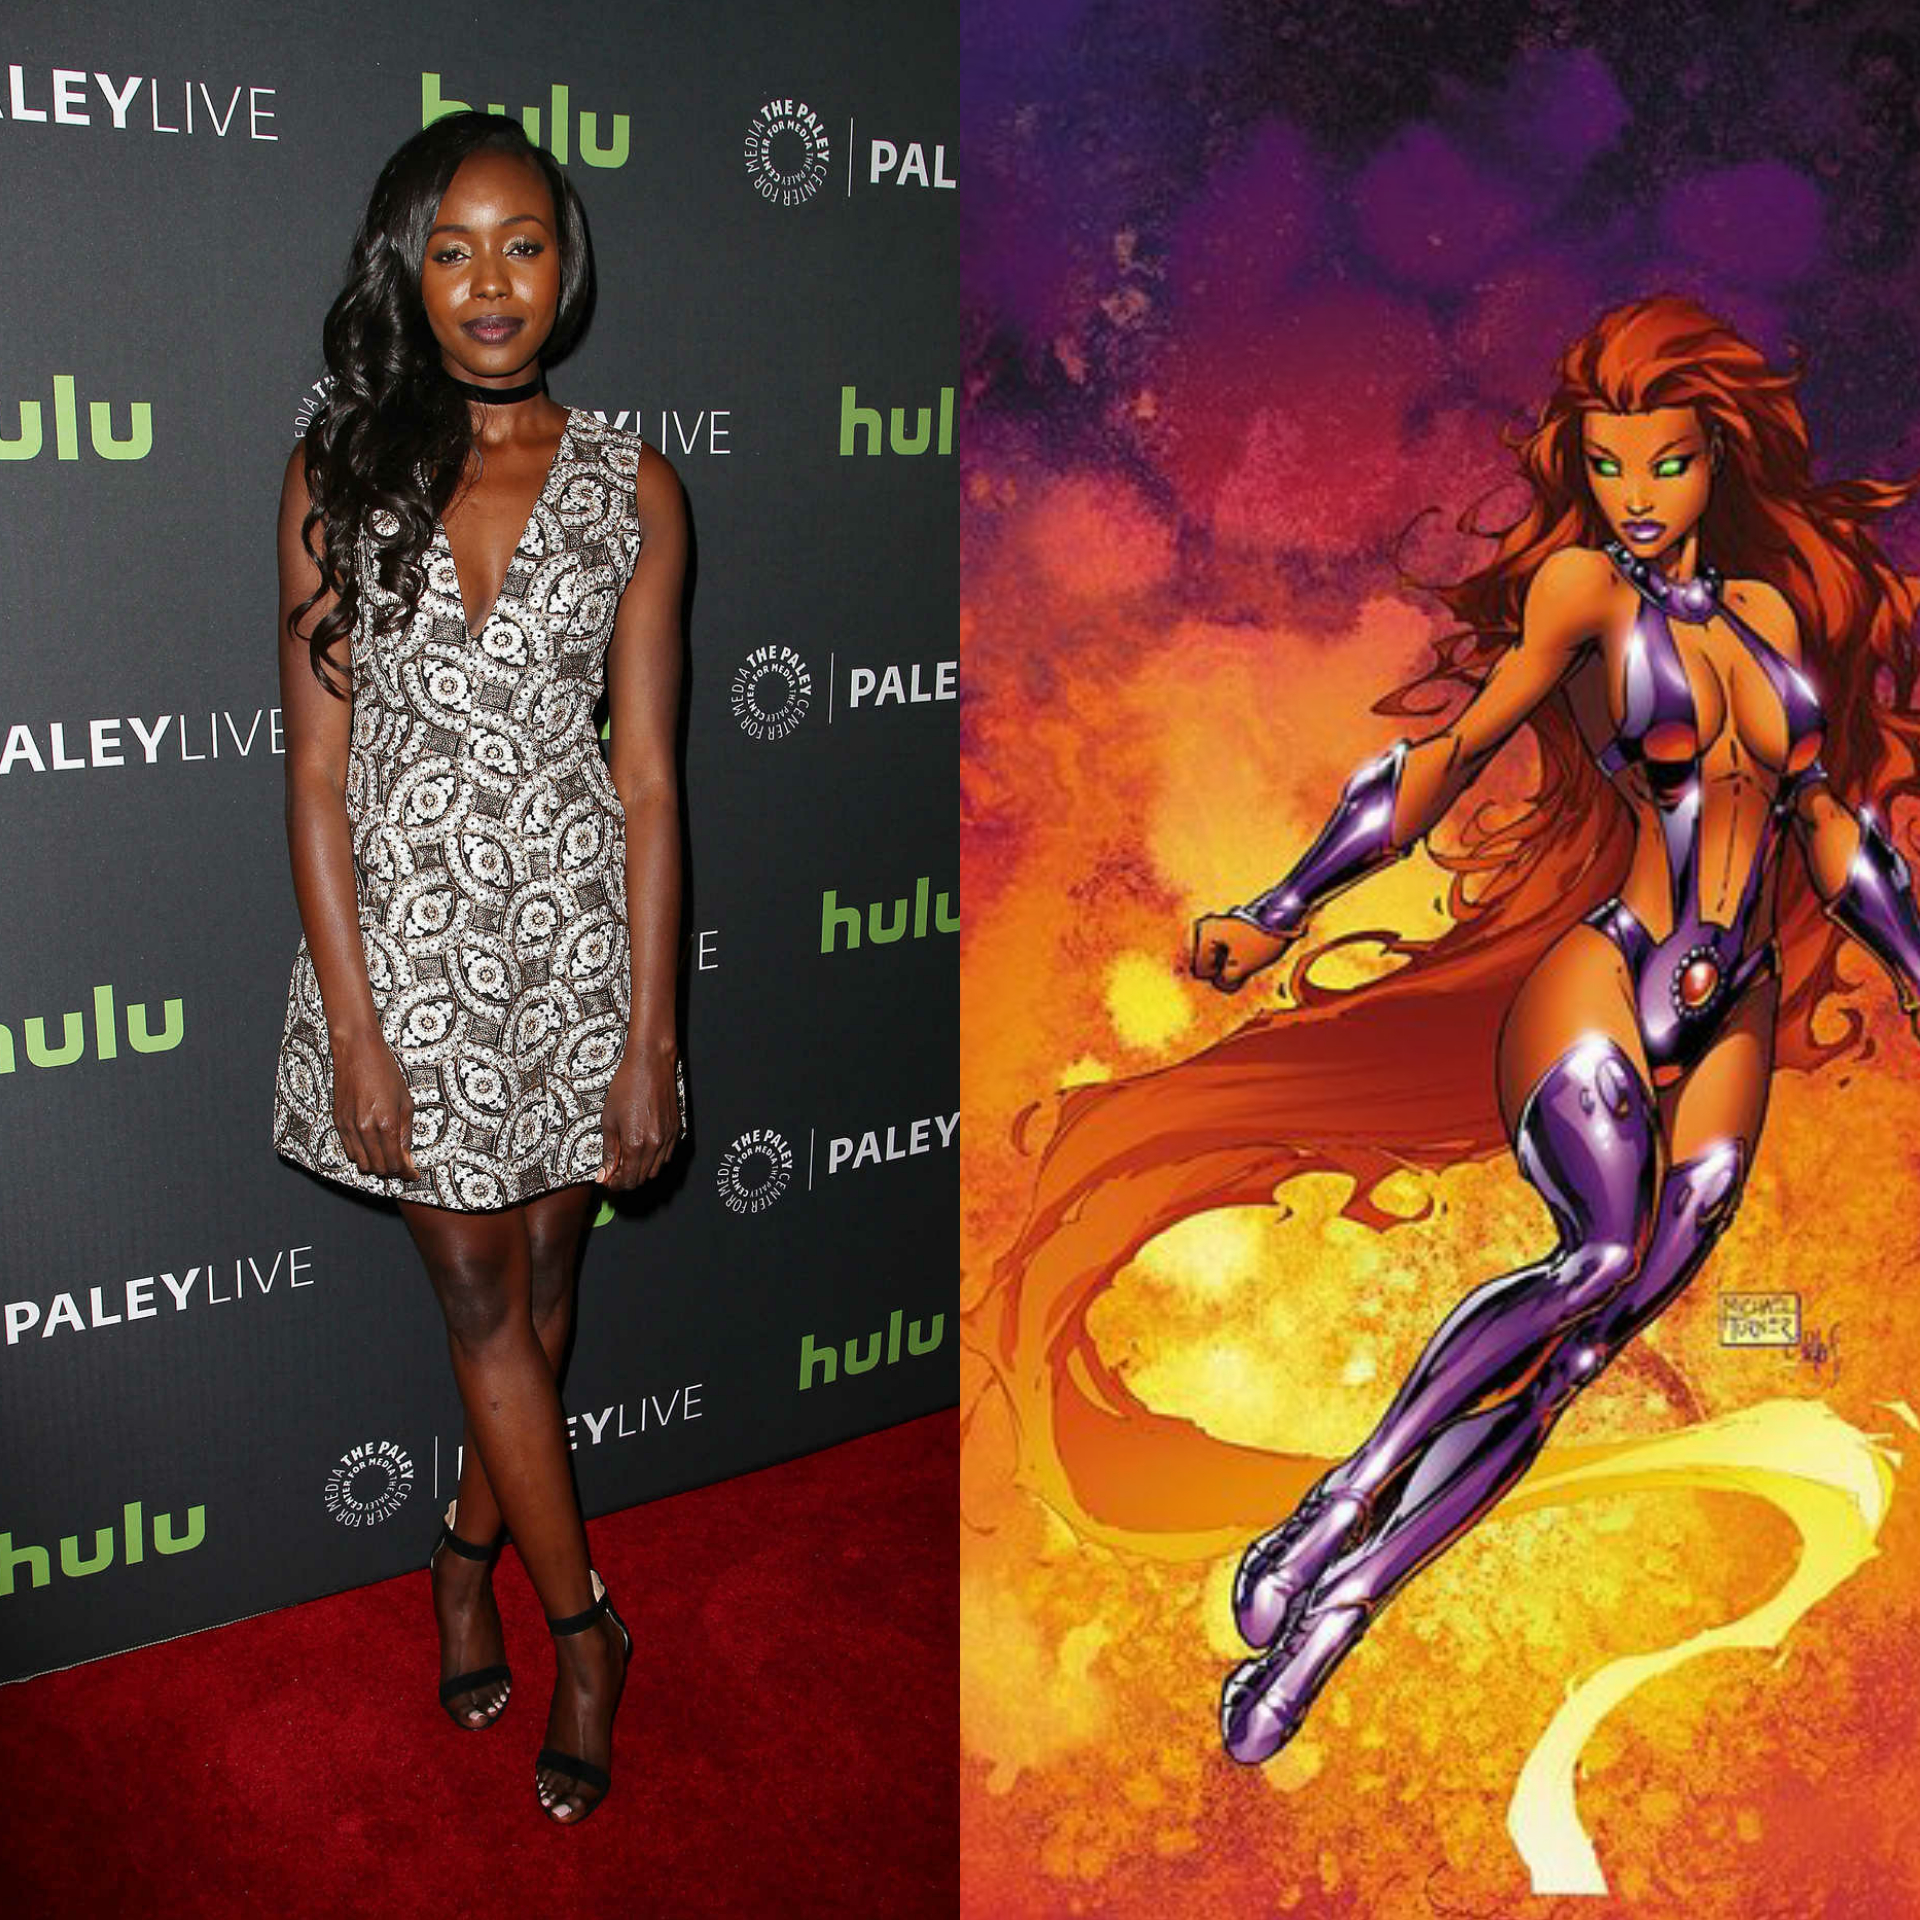 Anna Diop will play Starfire in Titans, the new live action DC Comics series on Warner Bros new streaming service